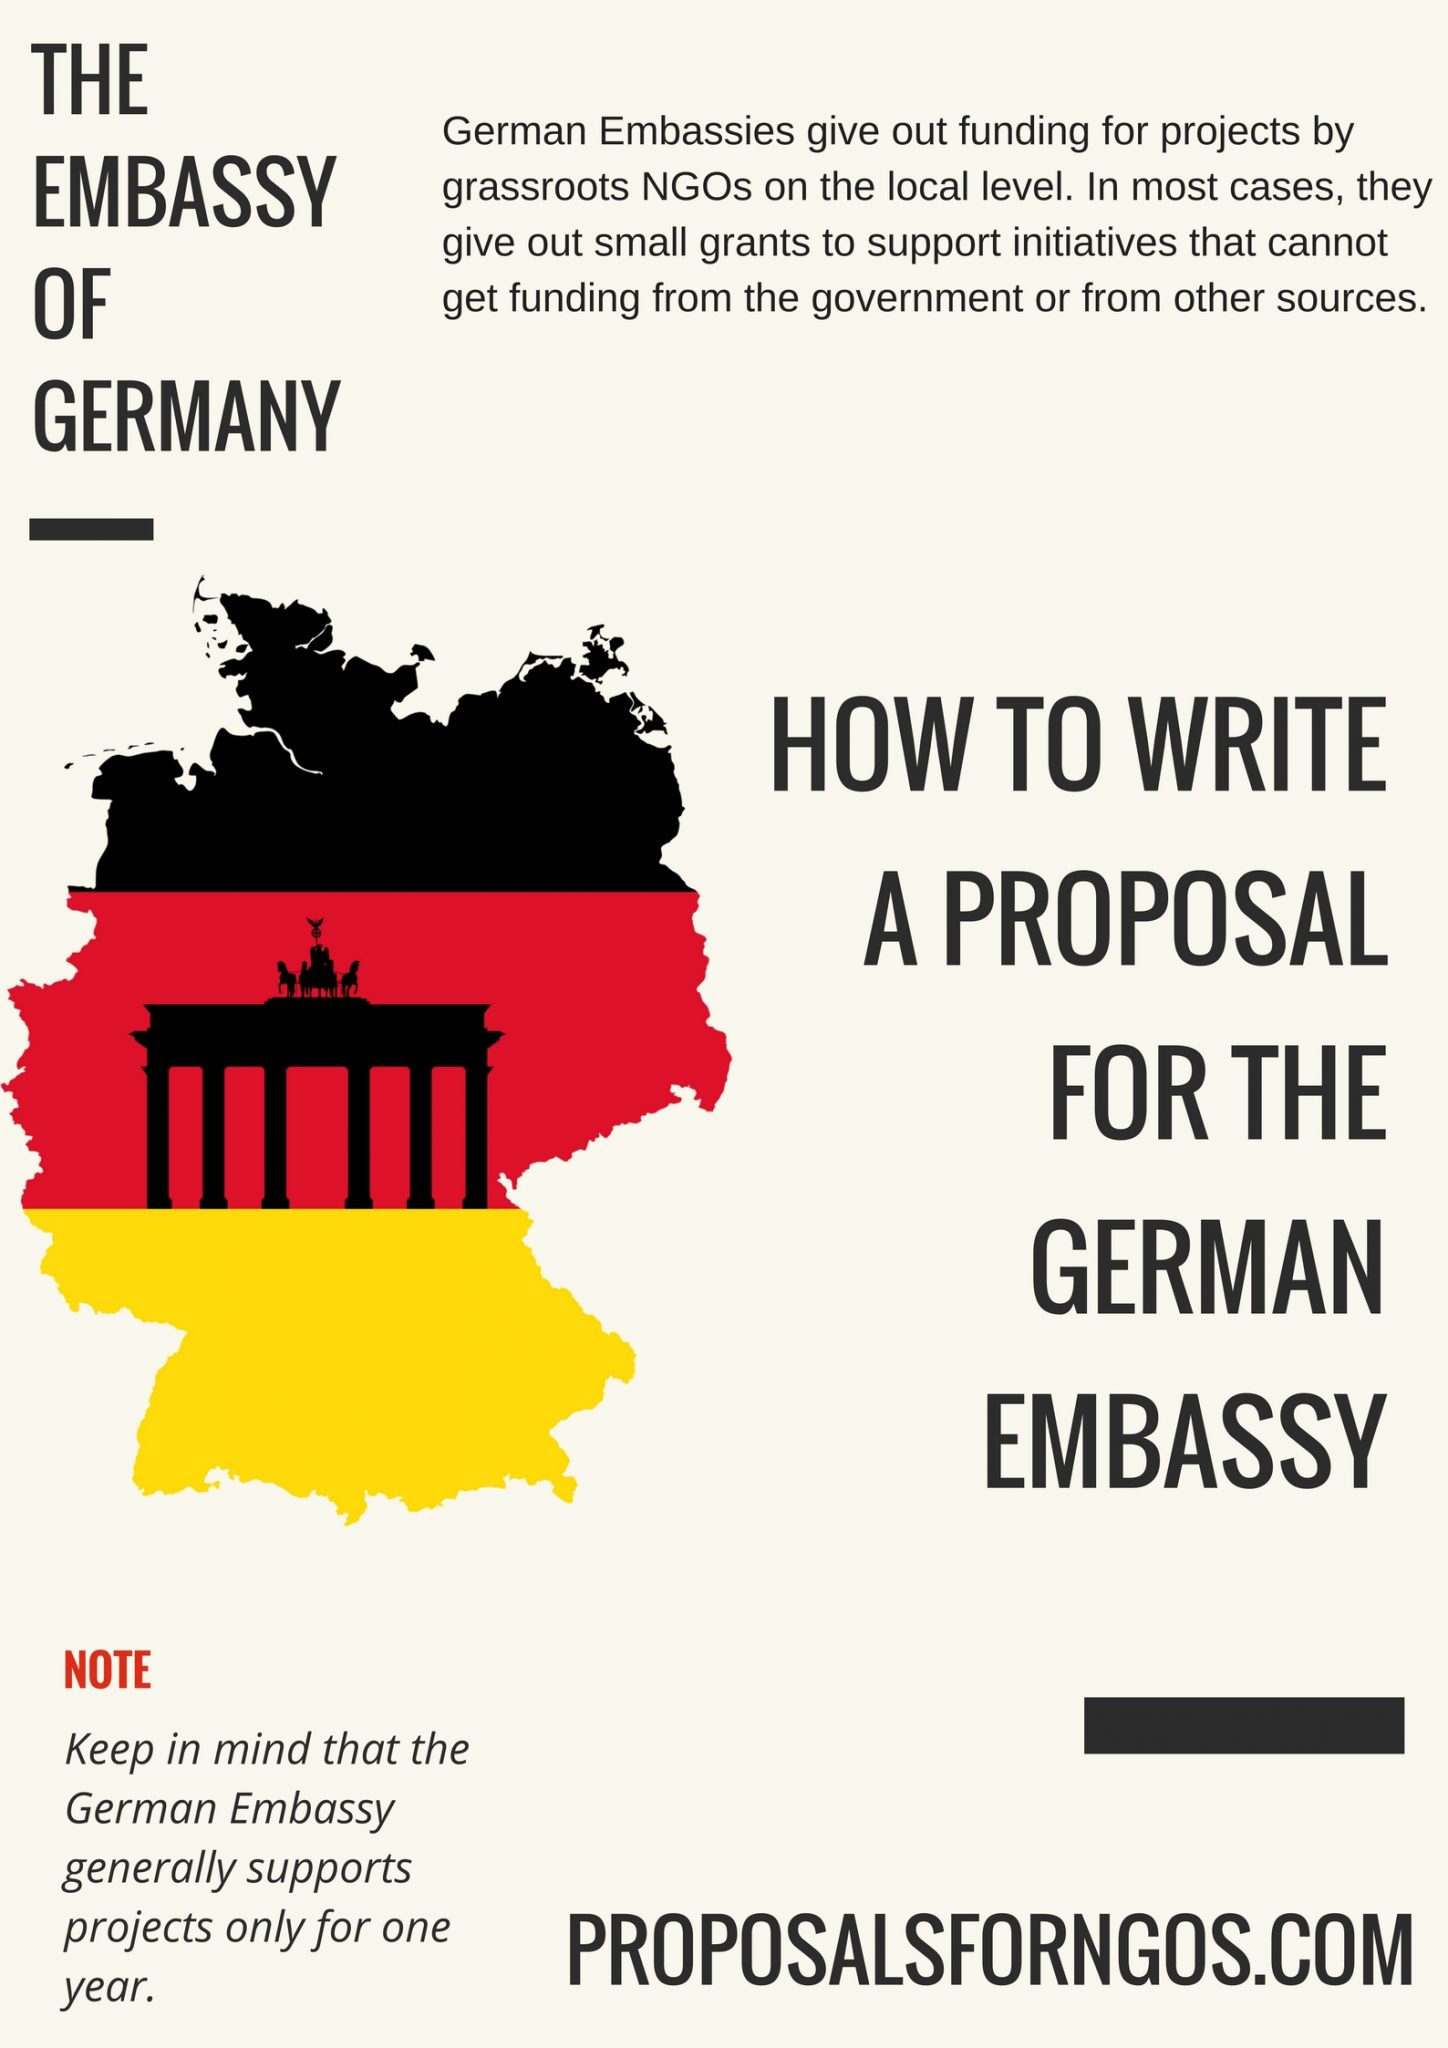 How to write a proposal for the German Embassy - proposalforNGOs